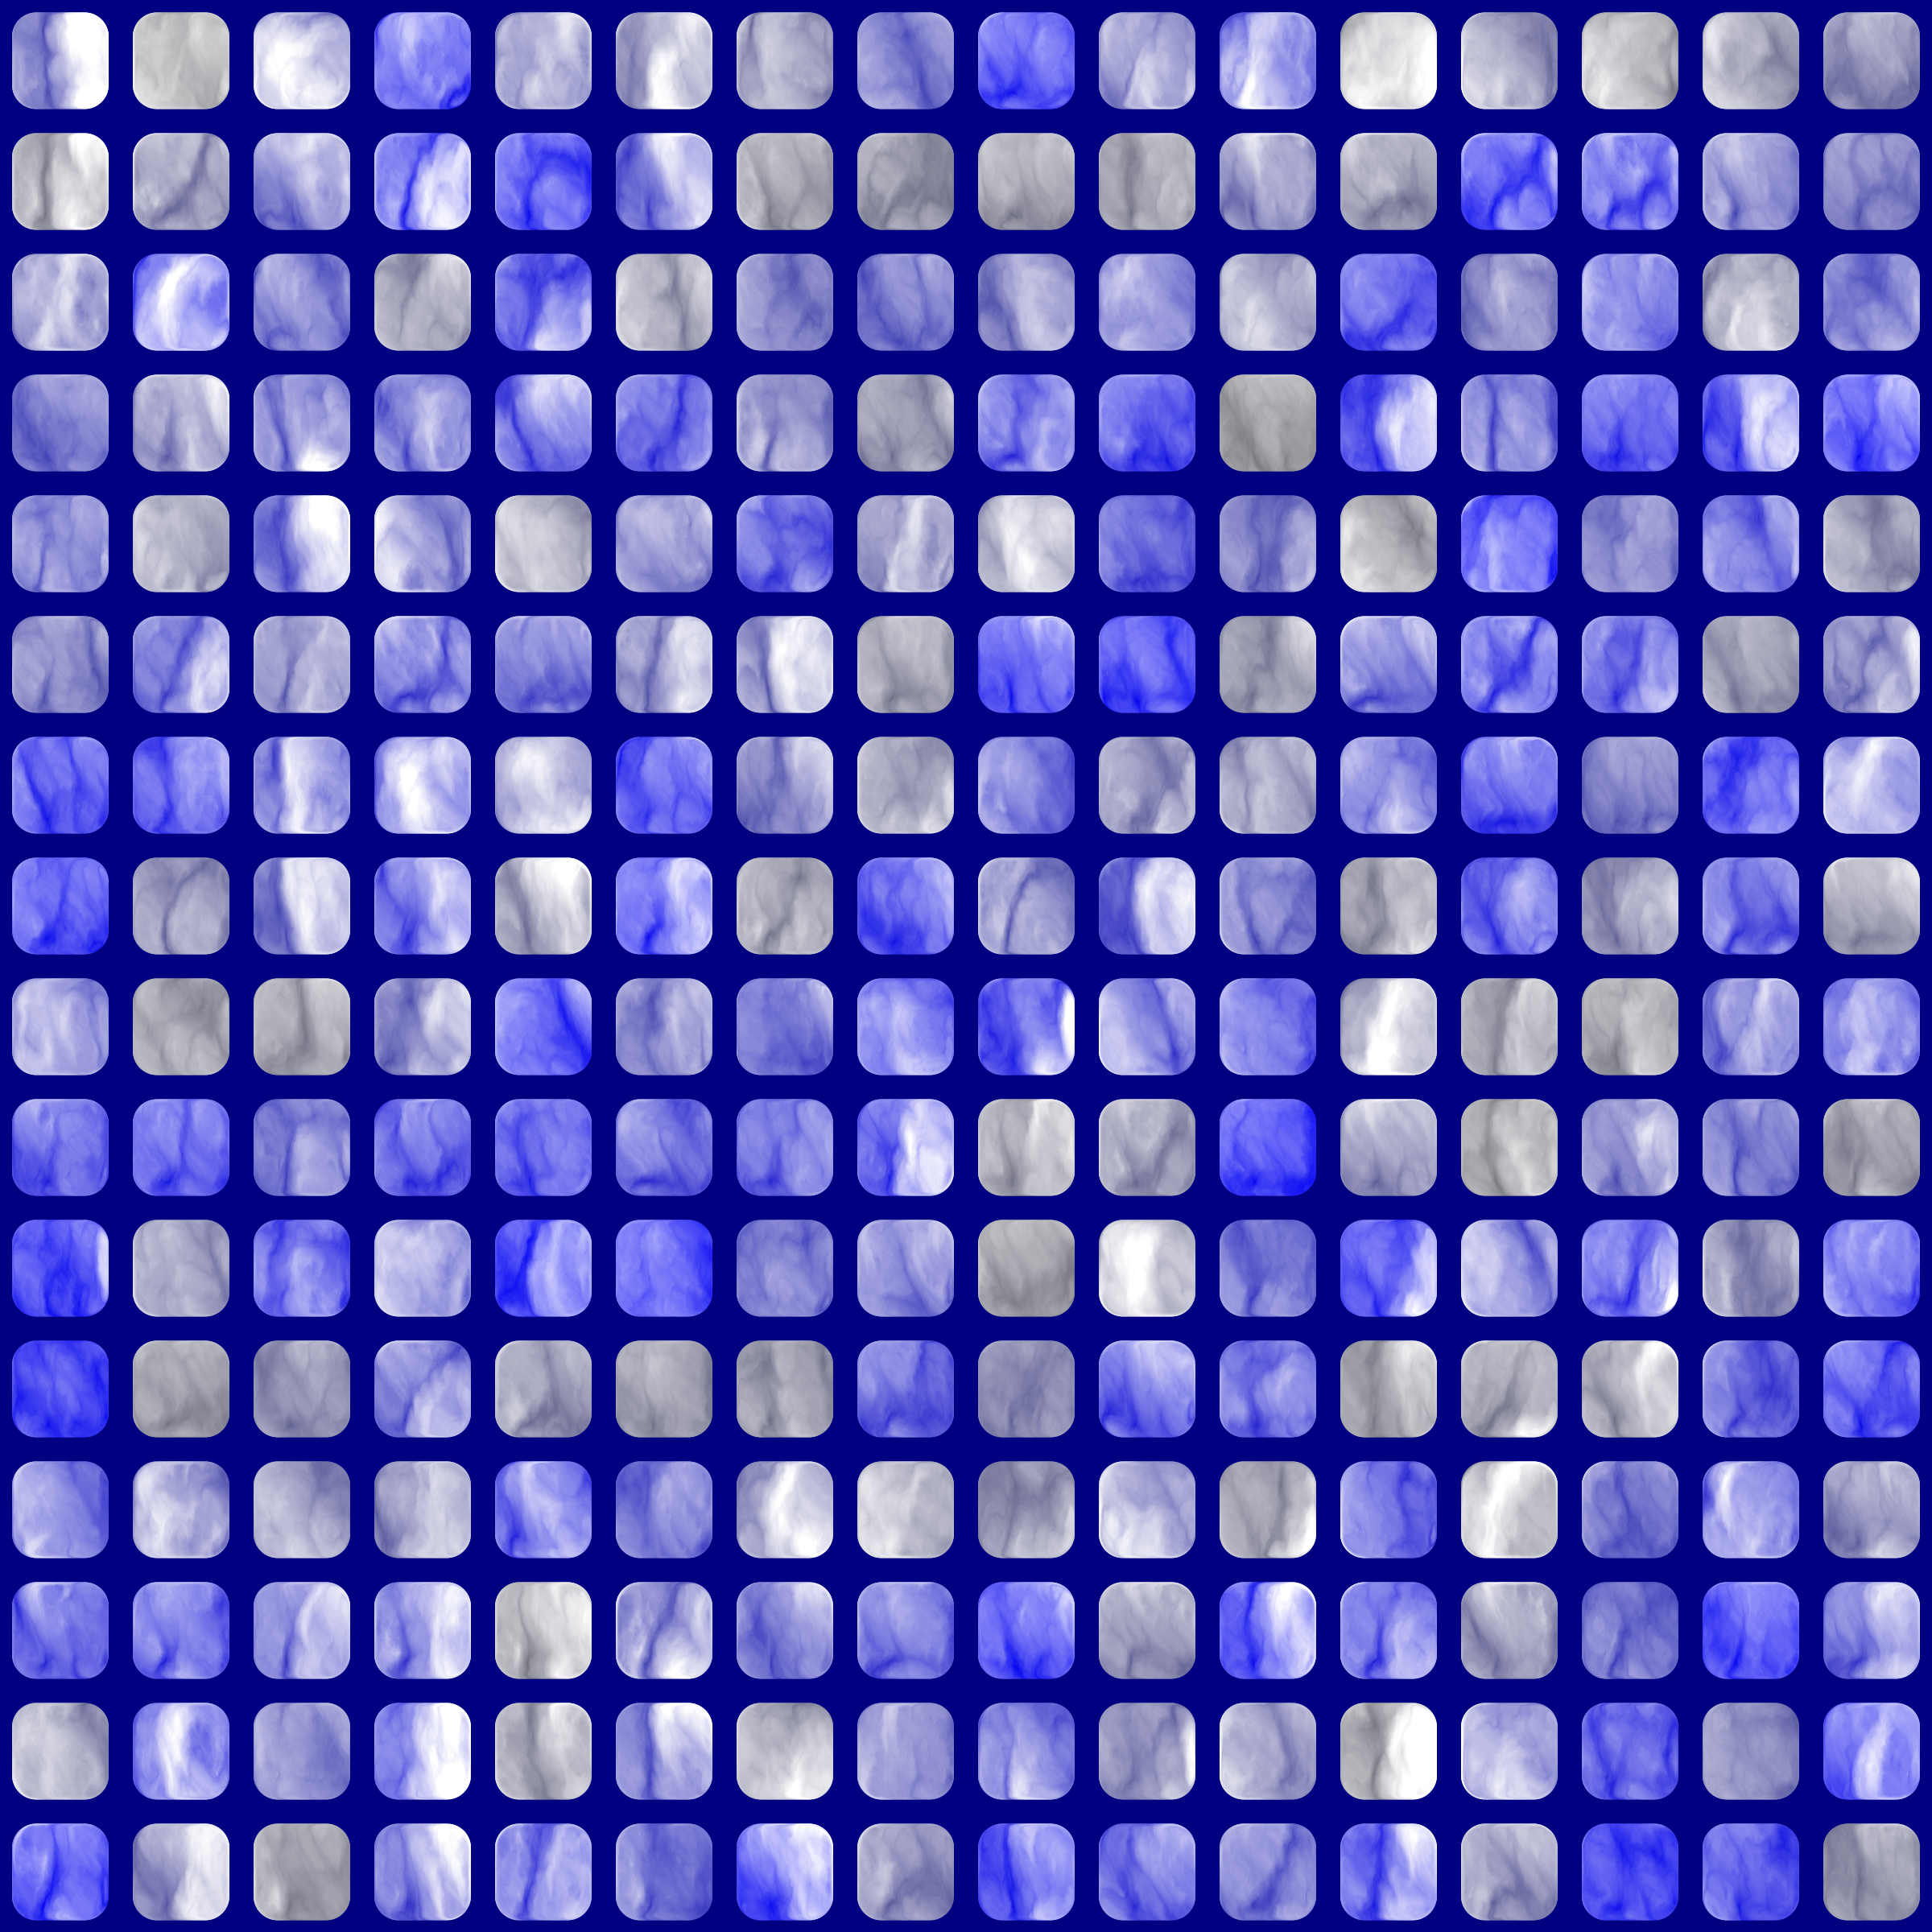 Background pattern 242 (colour 3) by Firkin